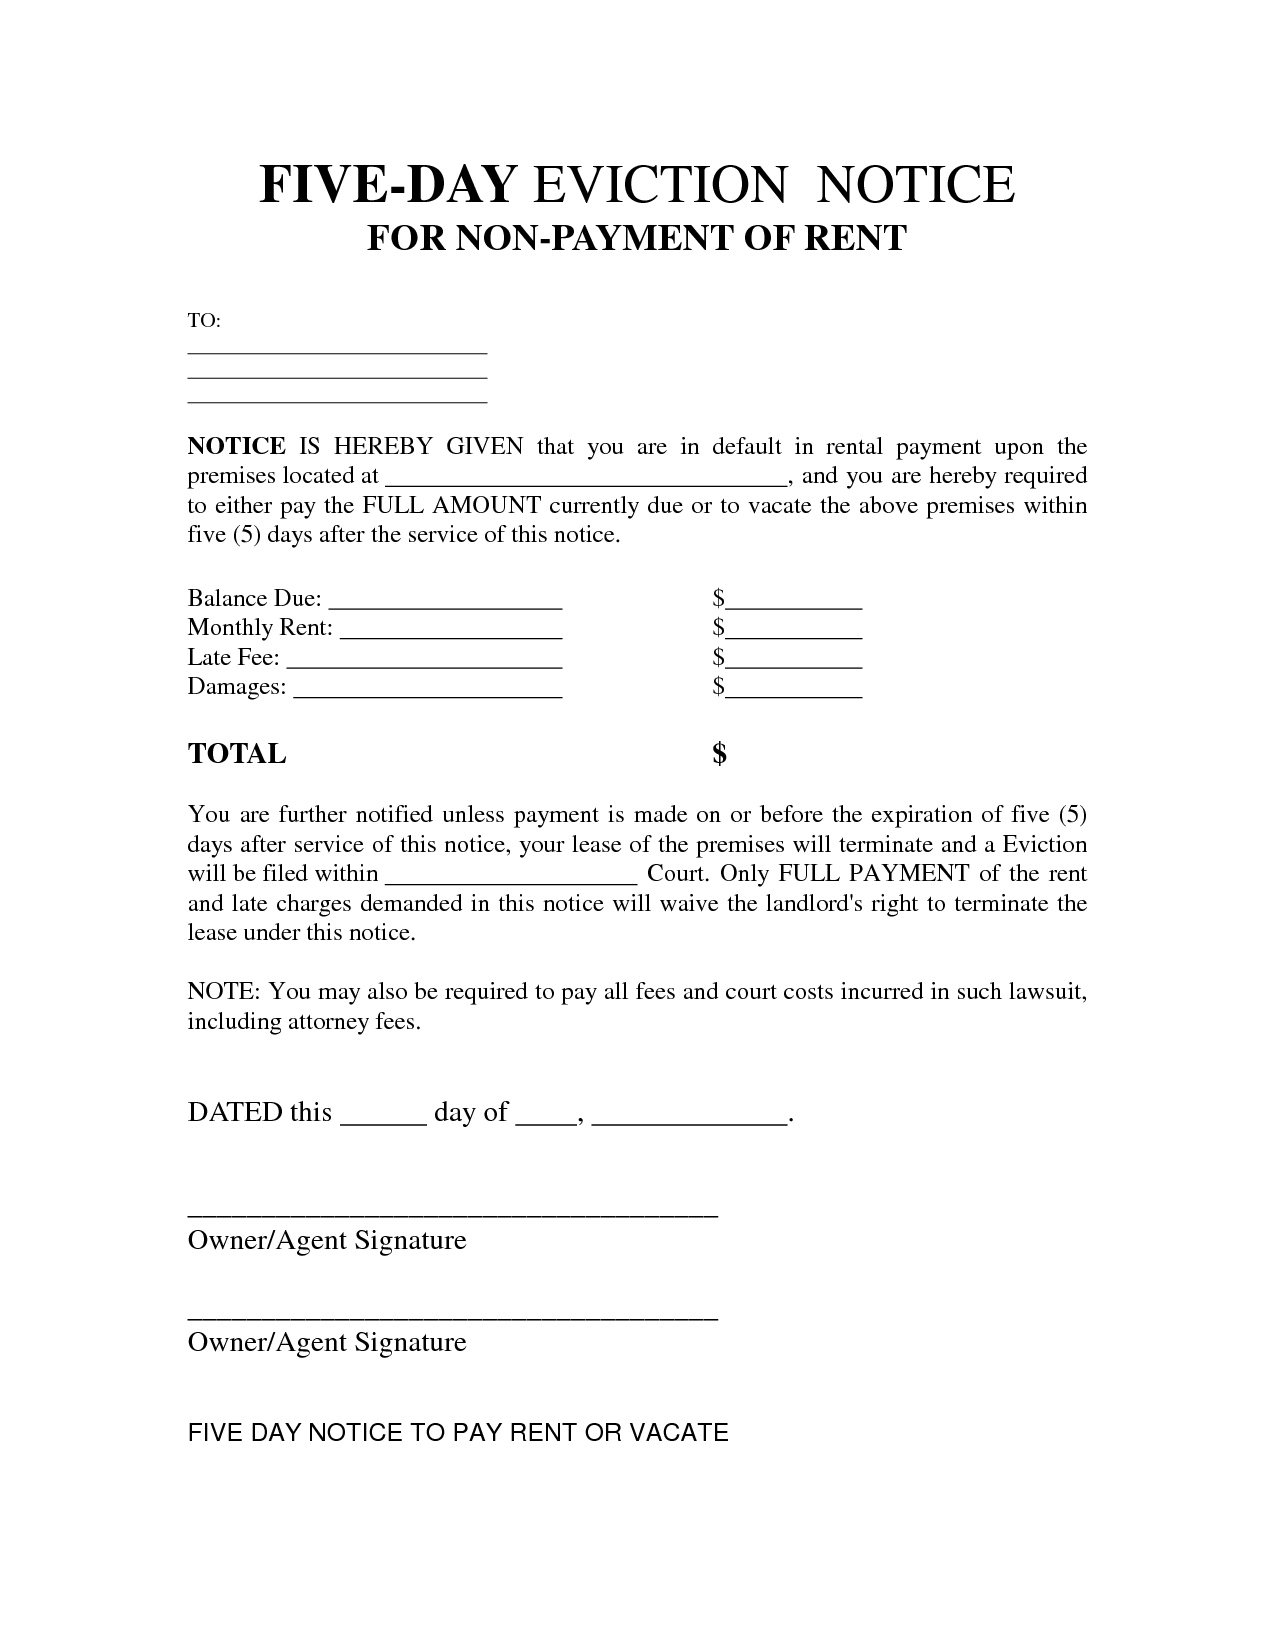 Free Printable Eviction Notice Letter | Bagnas   5 Day Eviction Notice  Landlord Eviction Notice Sample